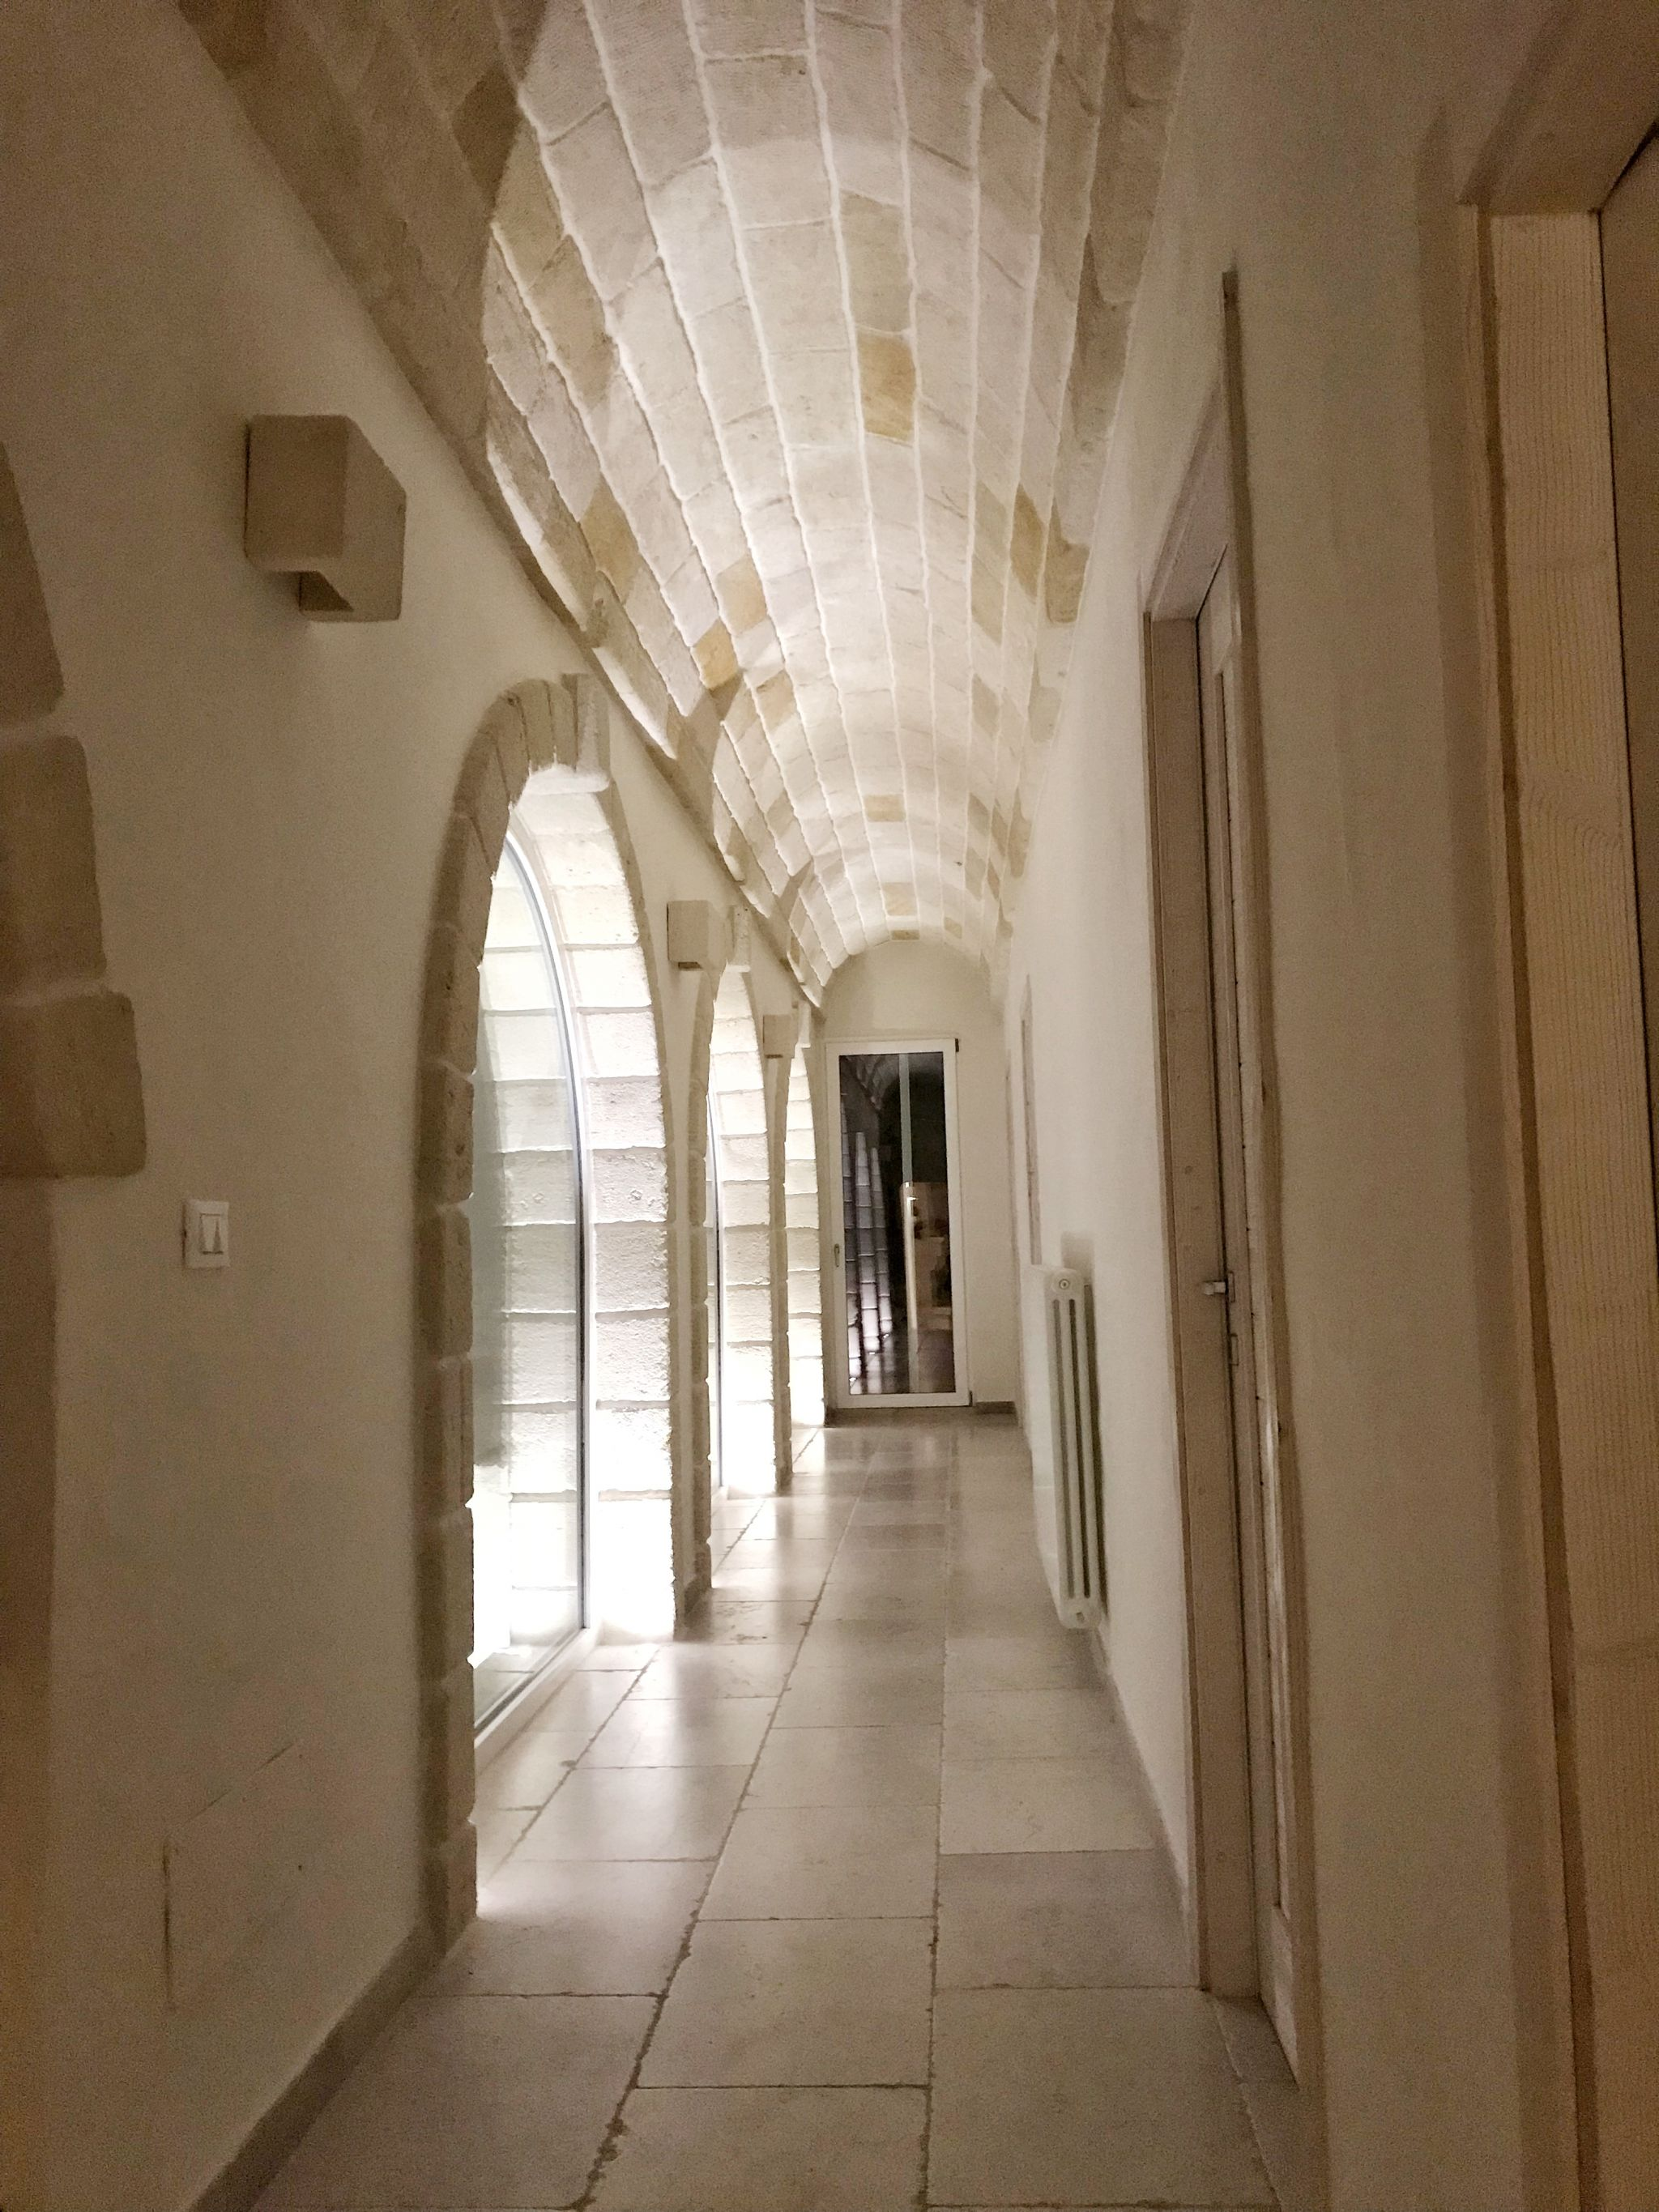 Corte dei Massapi hallway at night